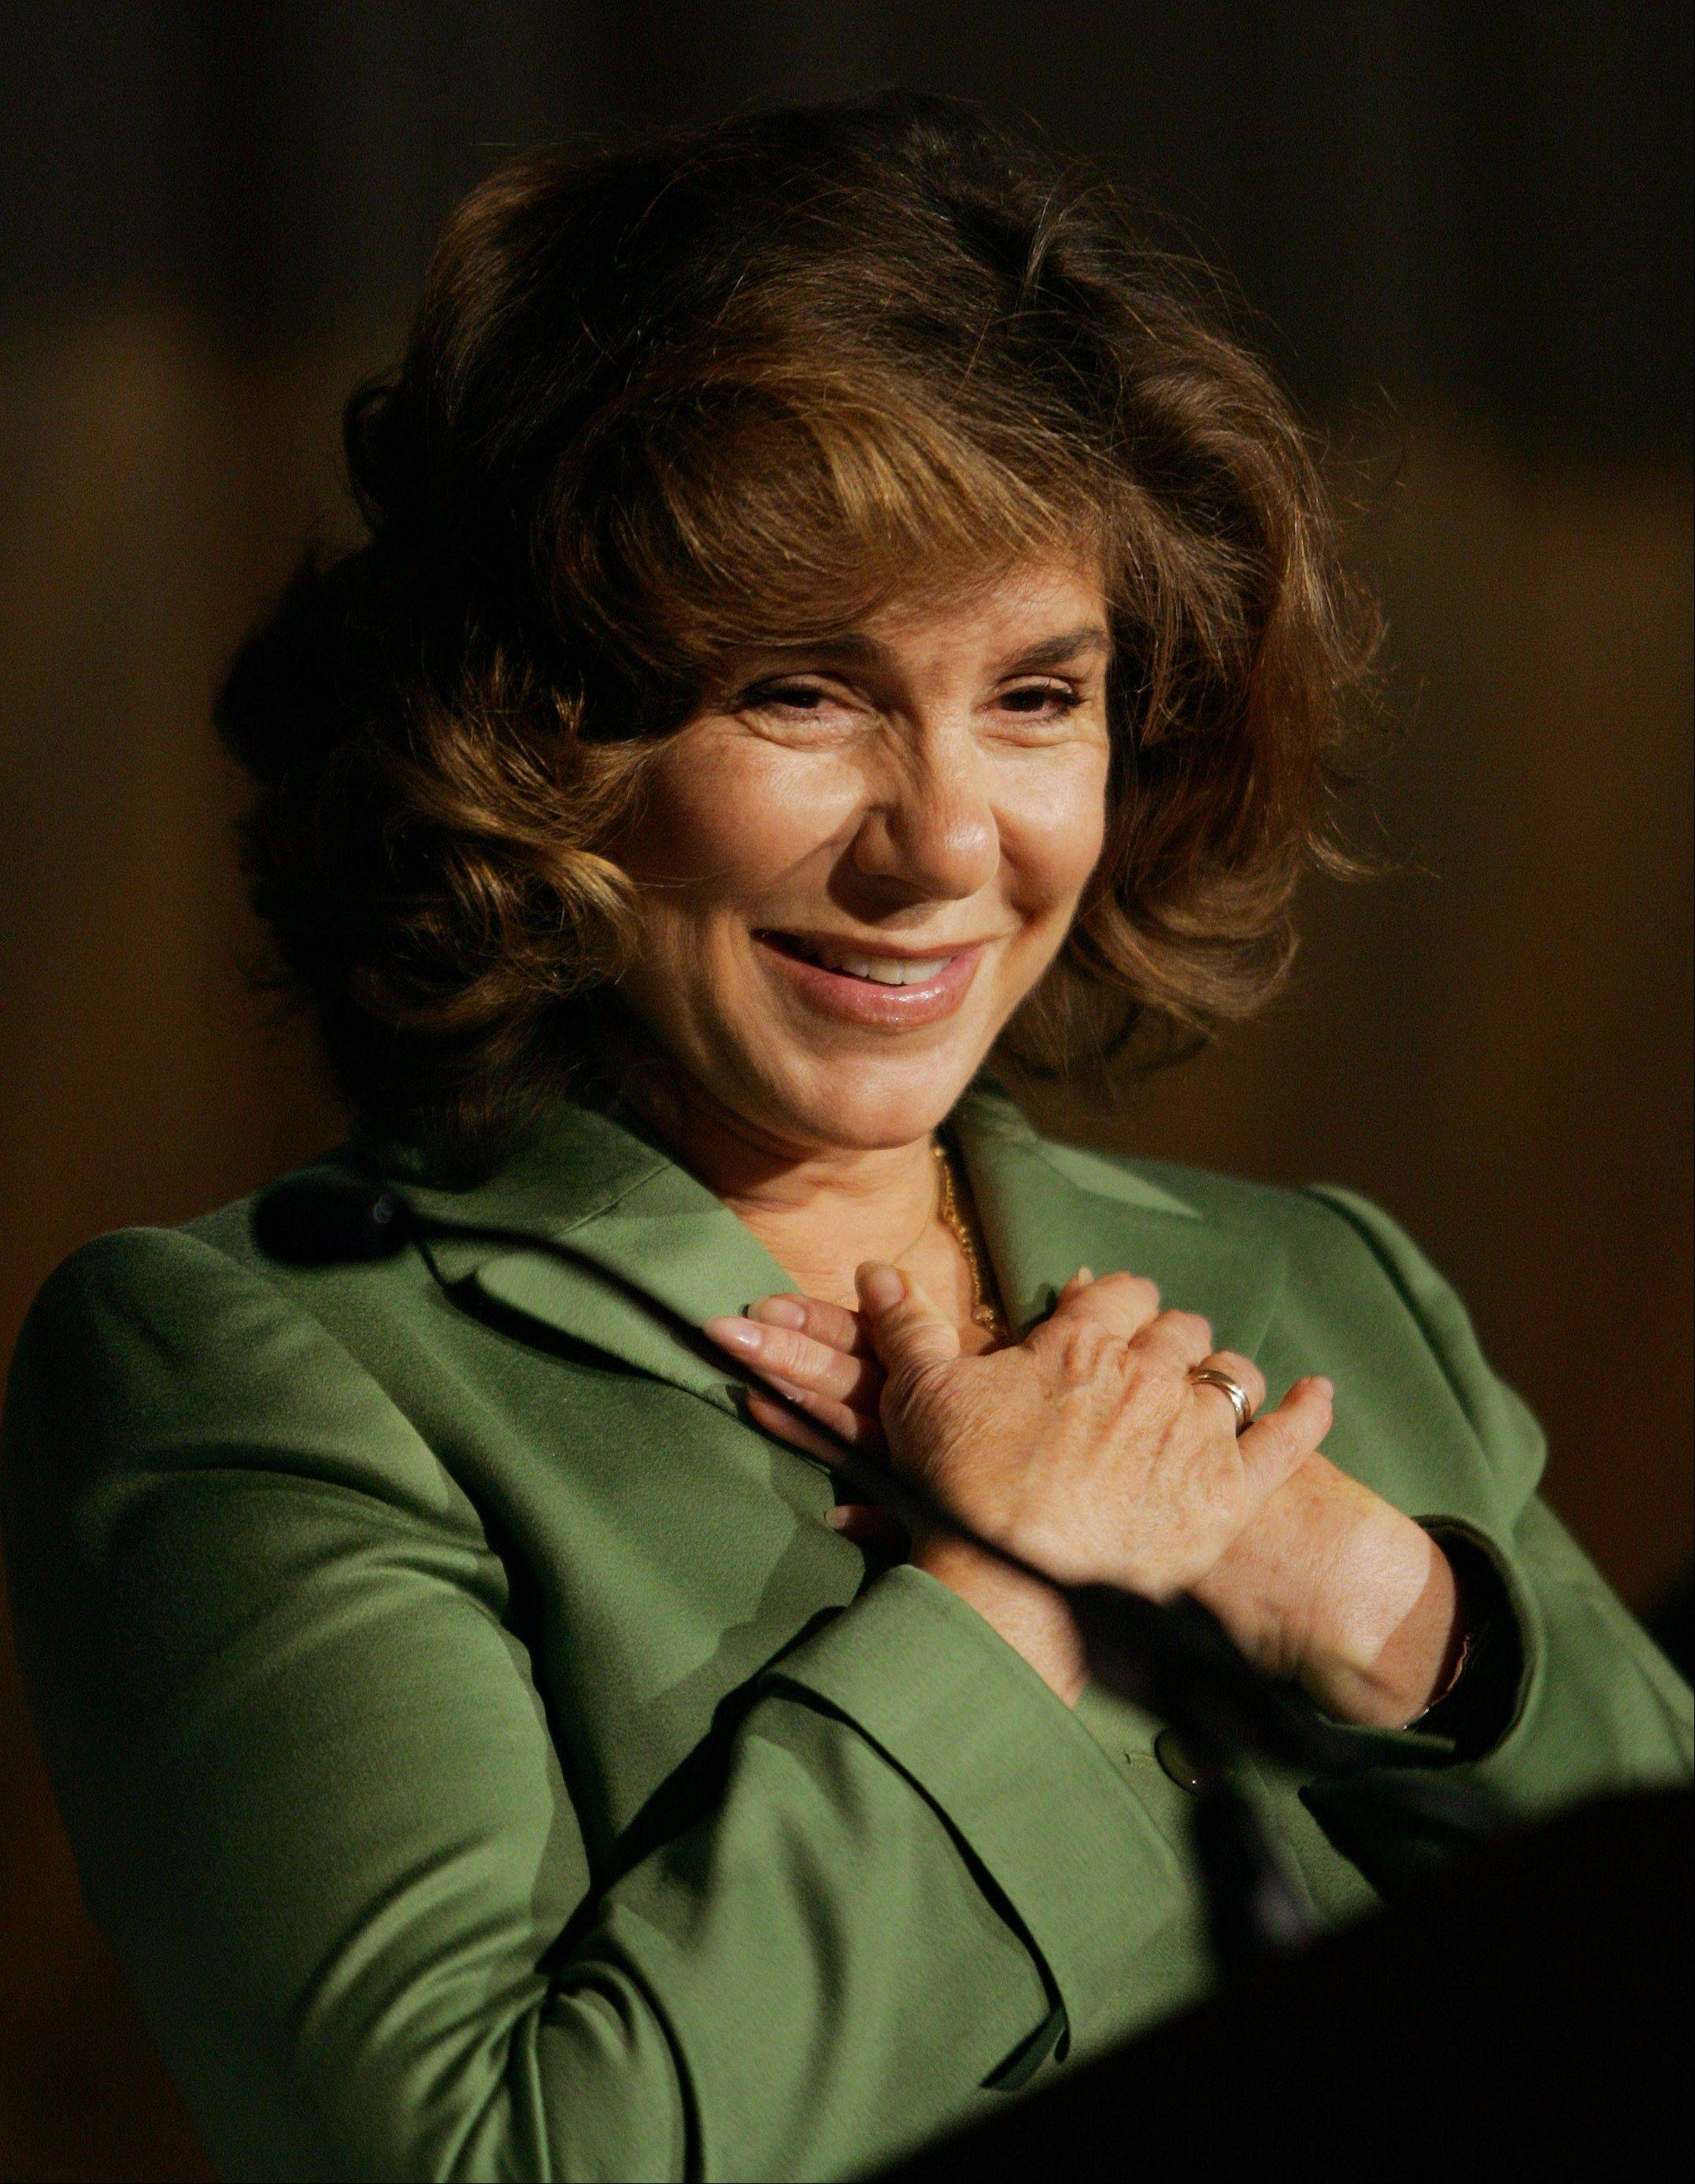 Teresa Heinz Kerry, wife of Secretary of State John Kerry, remains hospitalized in Boston and is listed in fair condition.